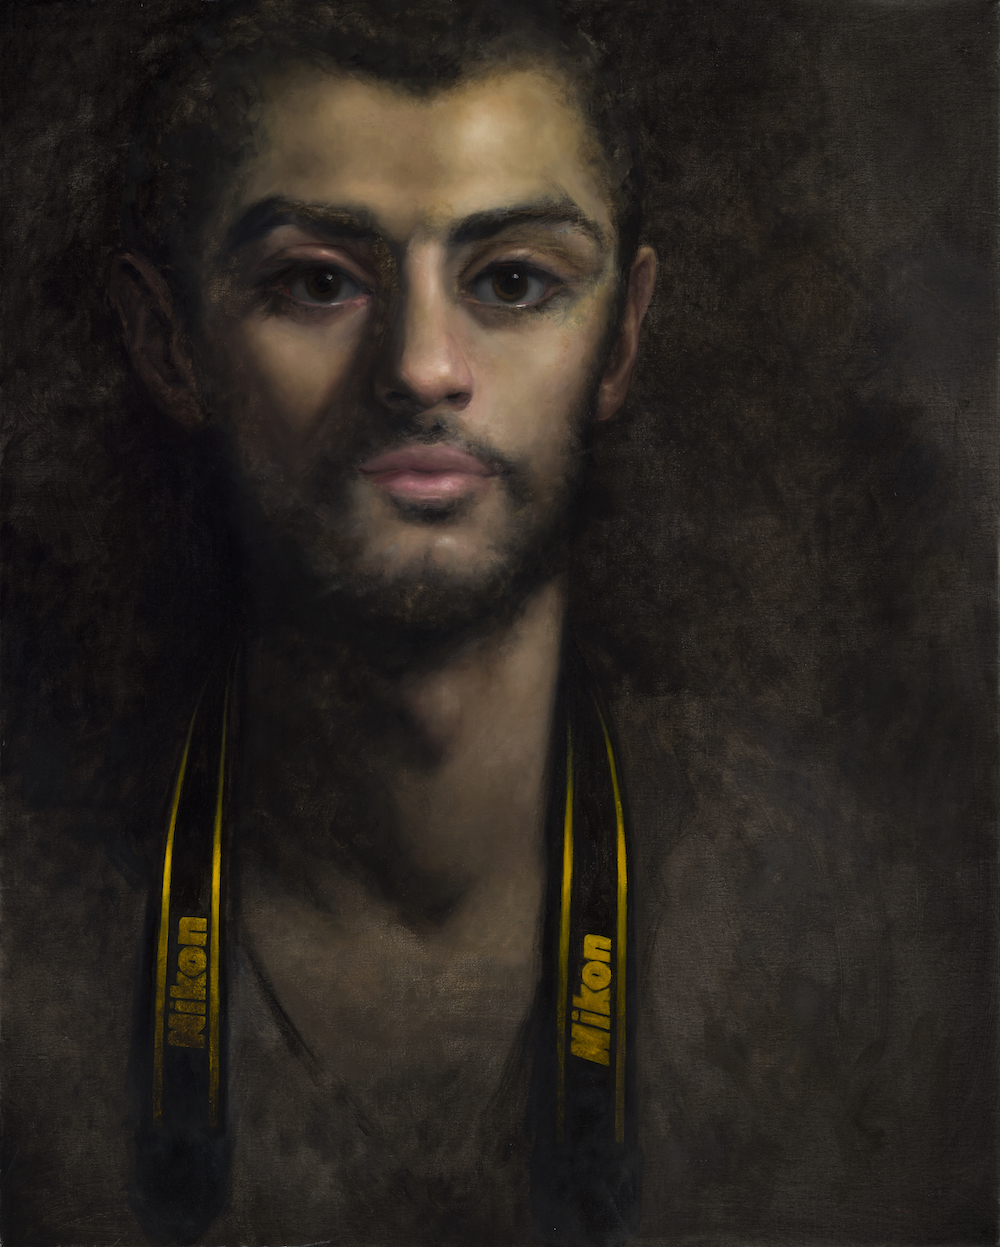 """Tarek,"" oil on linen, 30 x 24 inches, 2013."